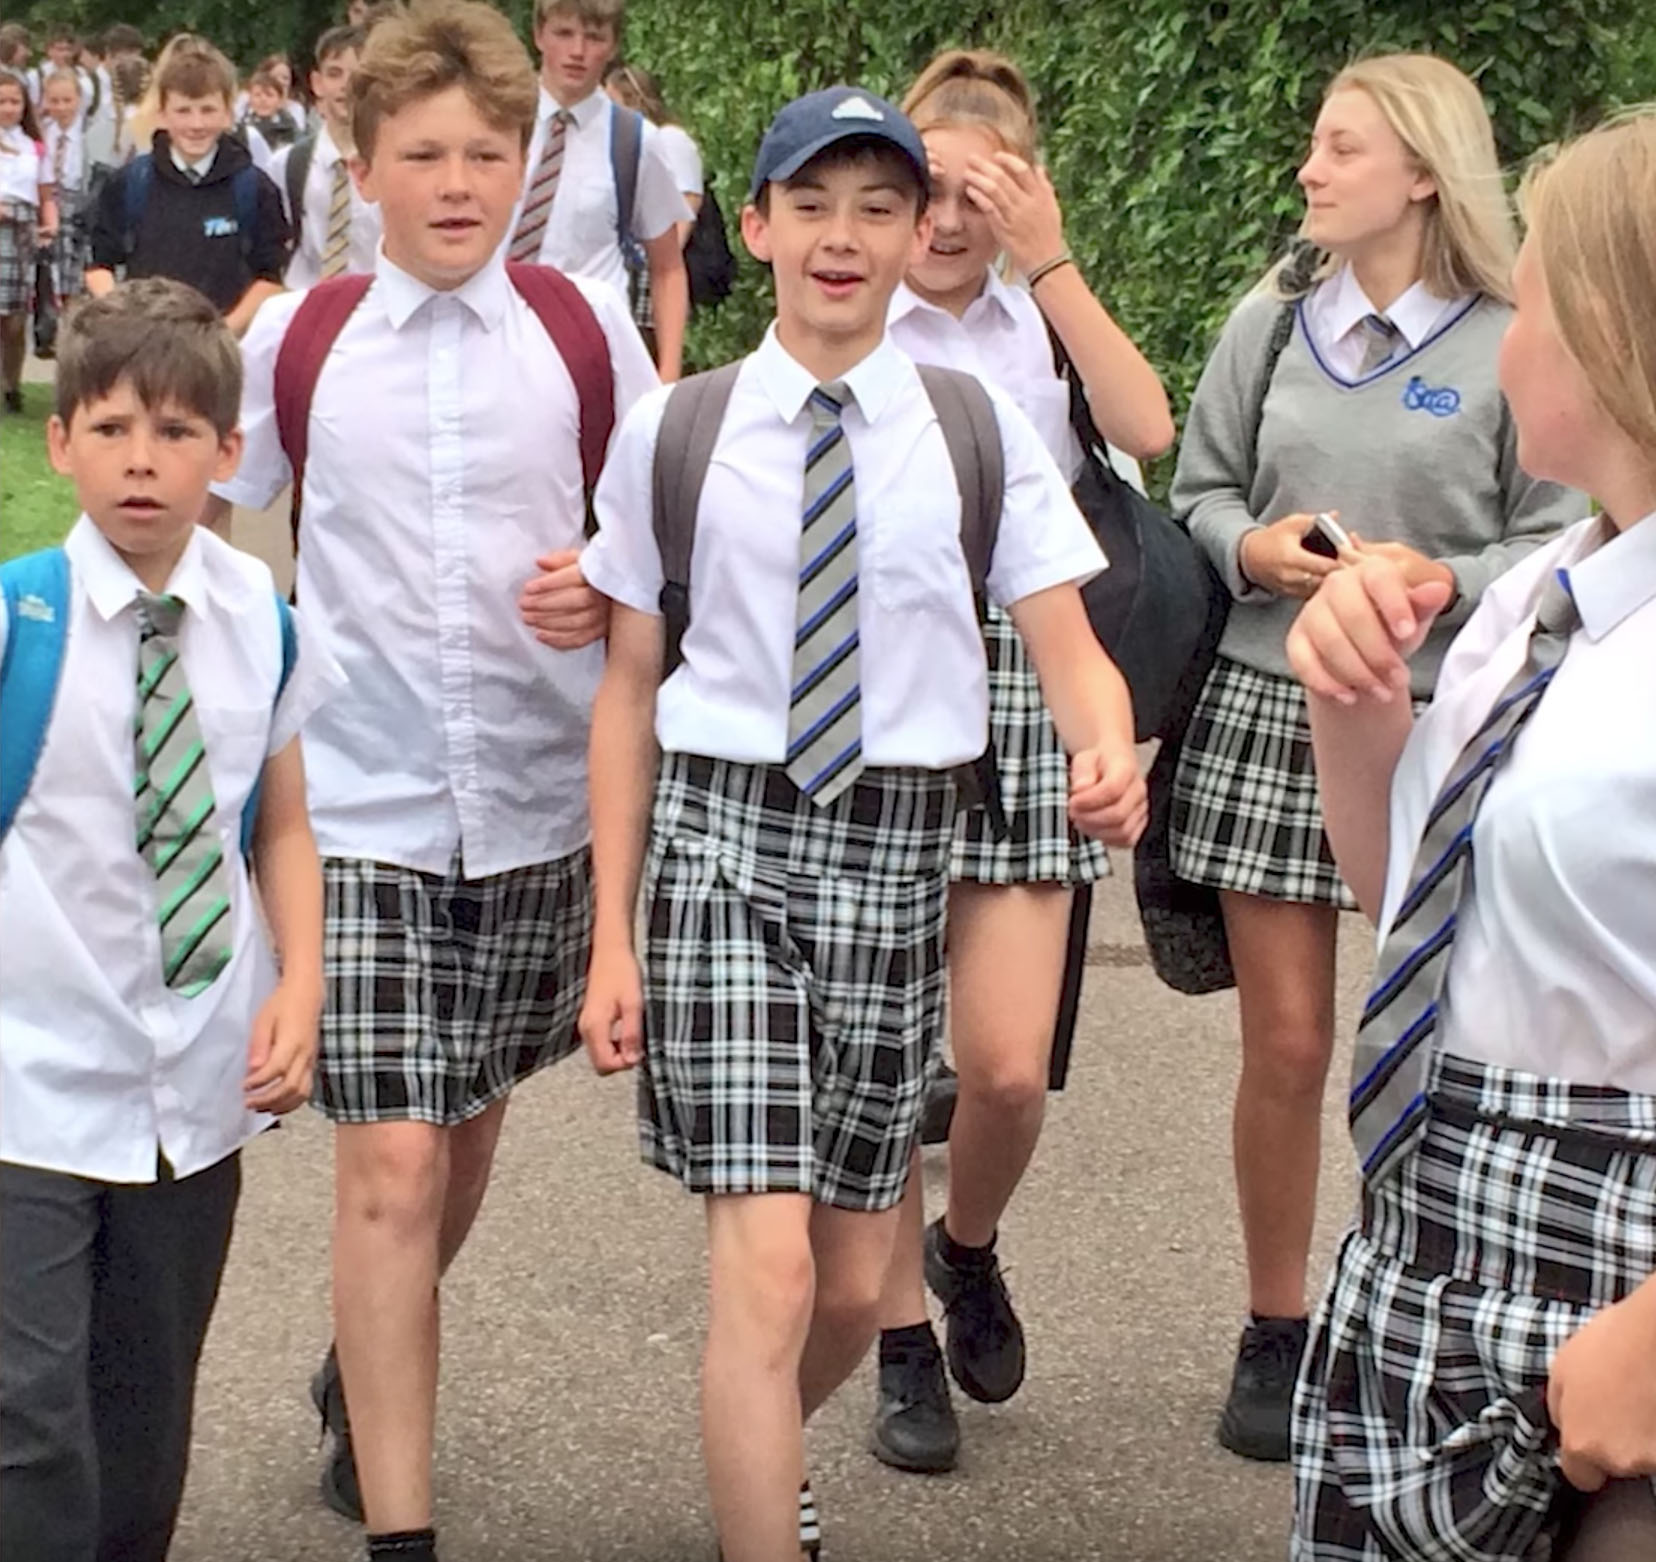 Male students at the Isca Academy in Exeter, England, wear skirts in protest of the school's shorts ban on June 22, 2017.